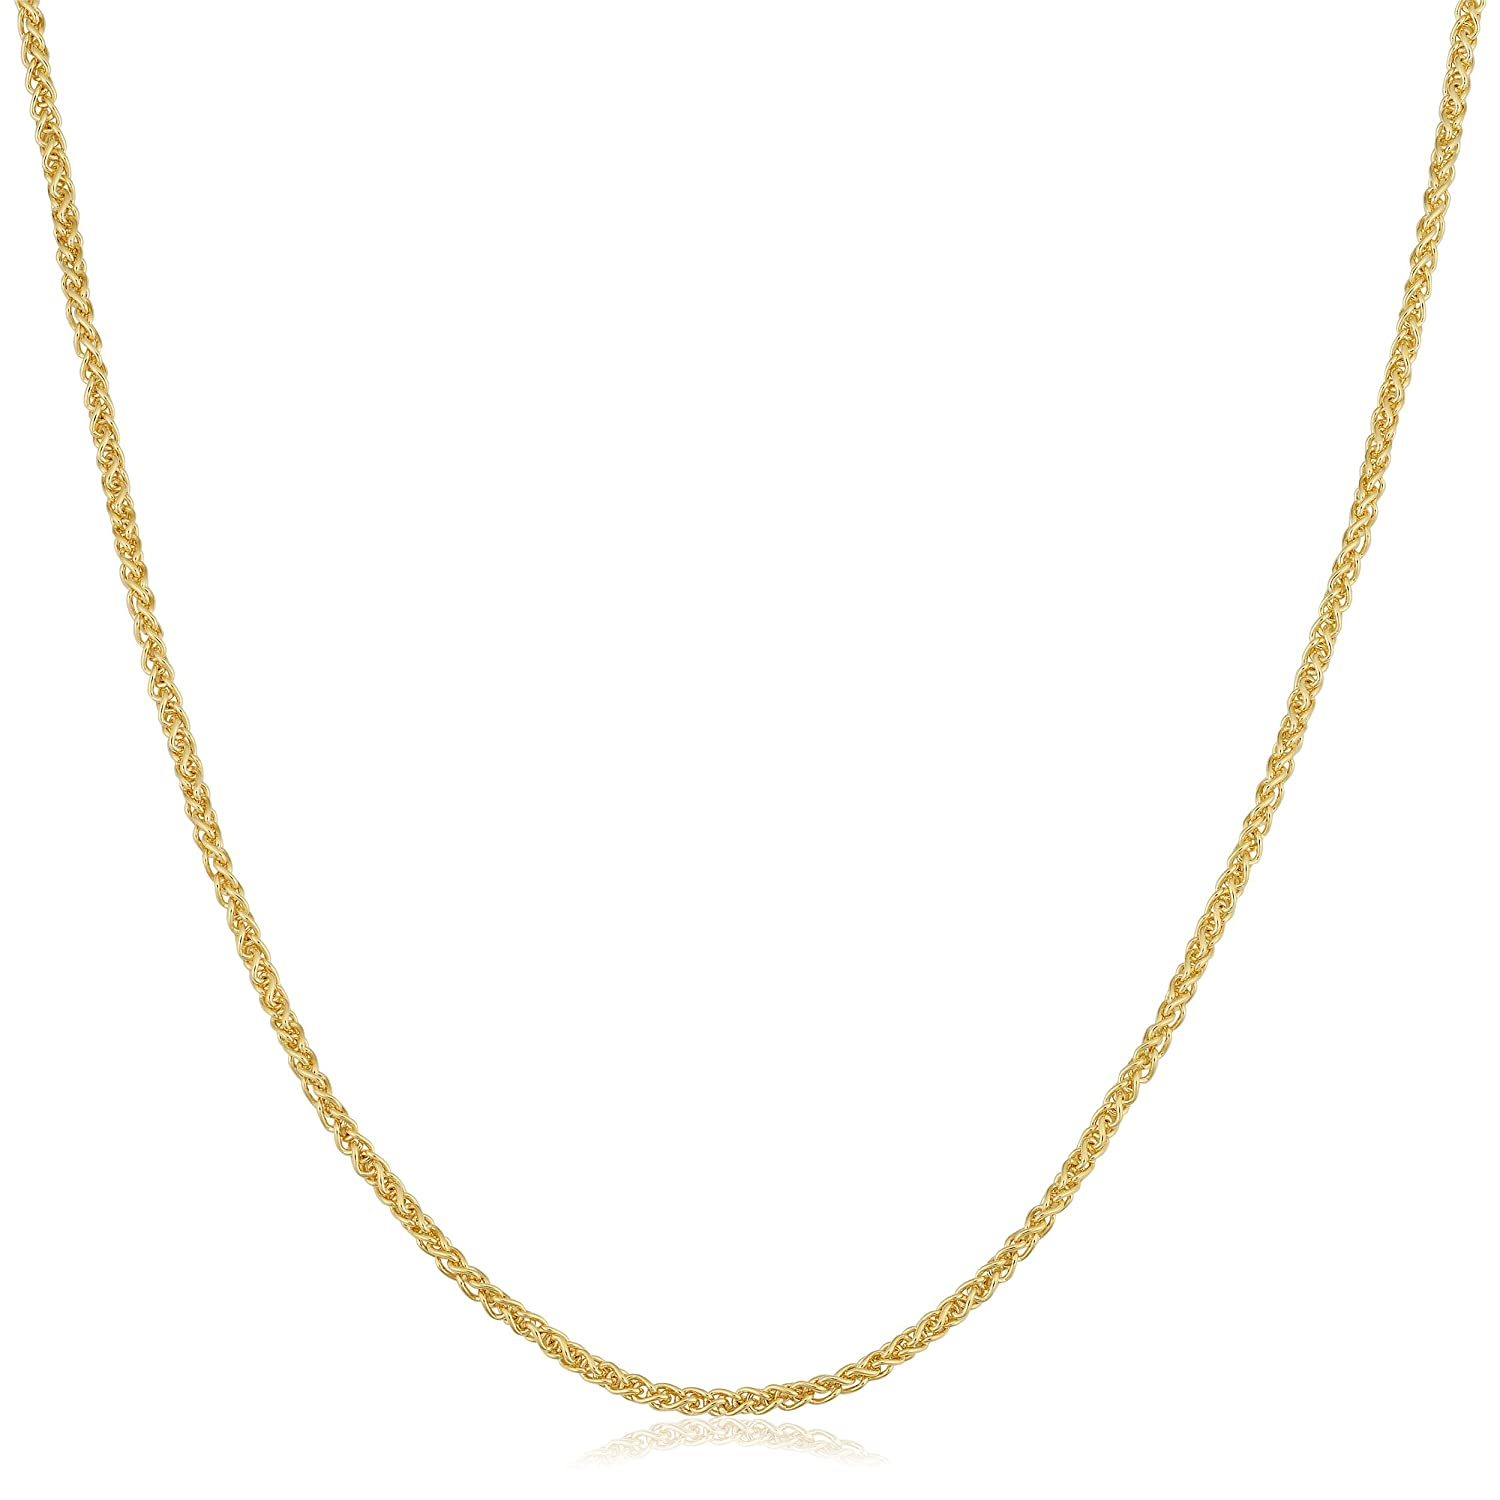 14k Yellow Gold Filled 1.5mm Round Wheat Chain Necklace Fremada KGFRDW040-22